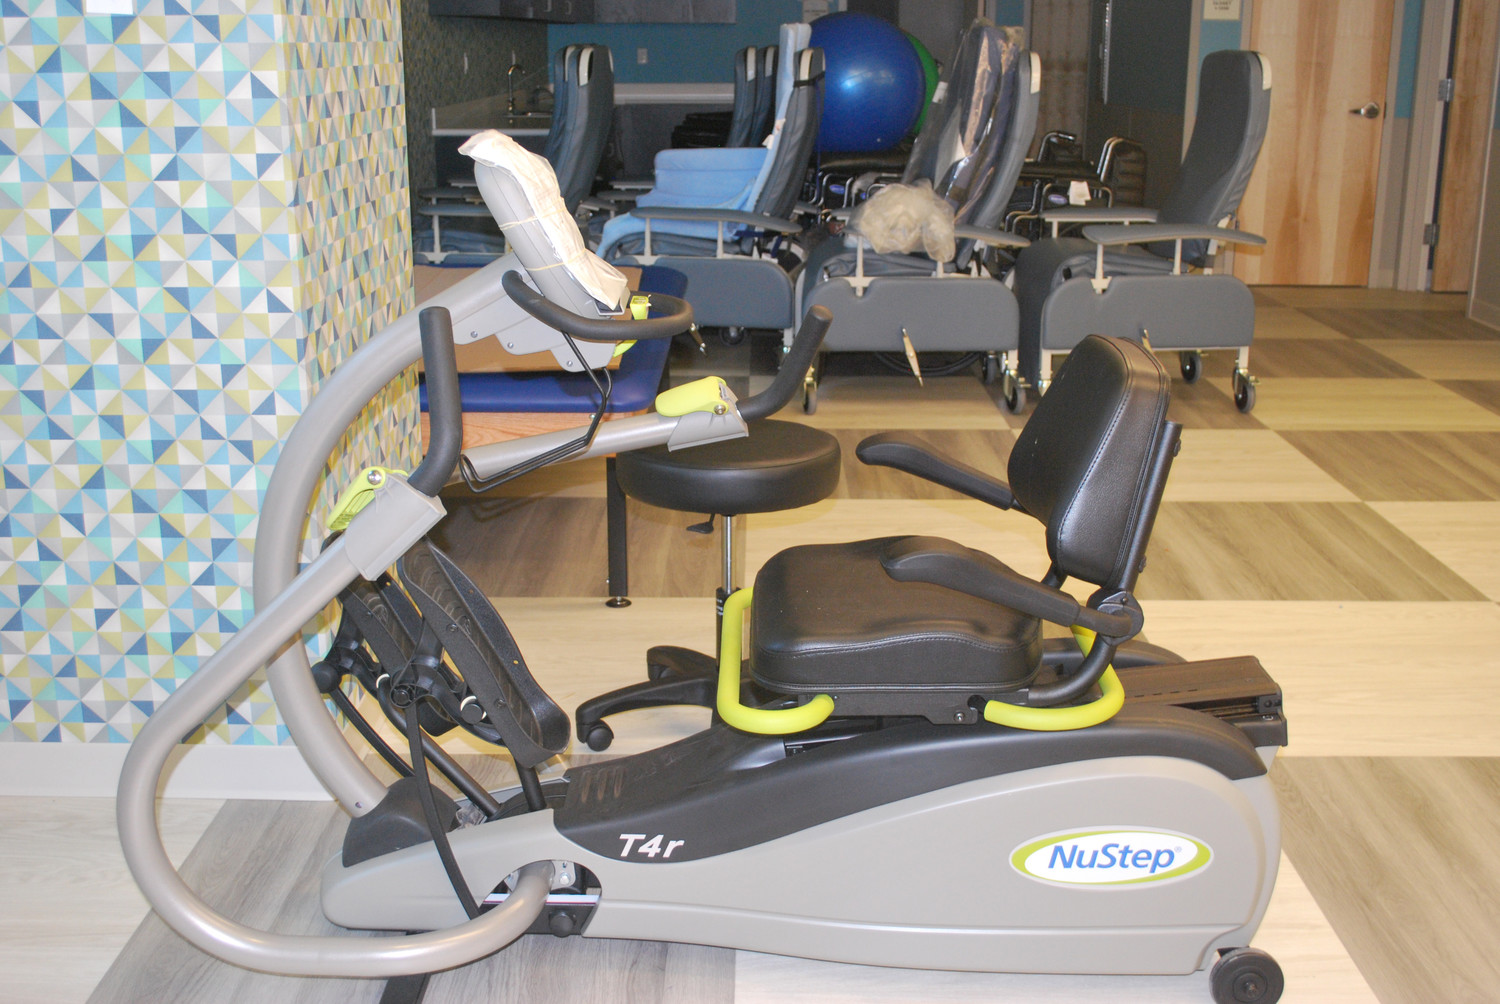 The new equipment in the physical fitness center was still being unwrapped at the end of the month.